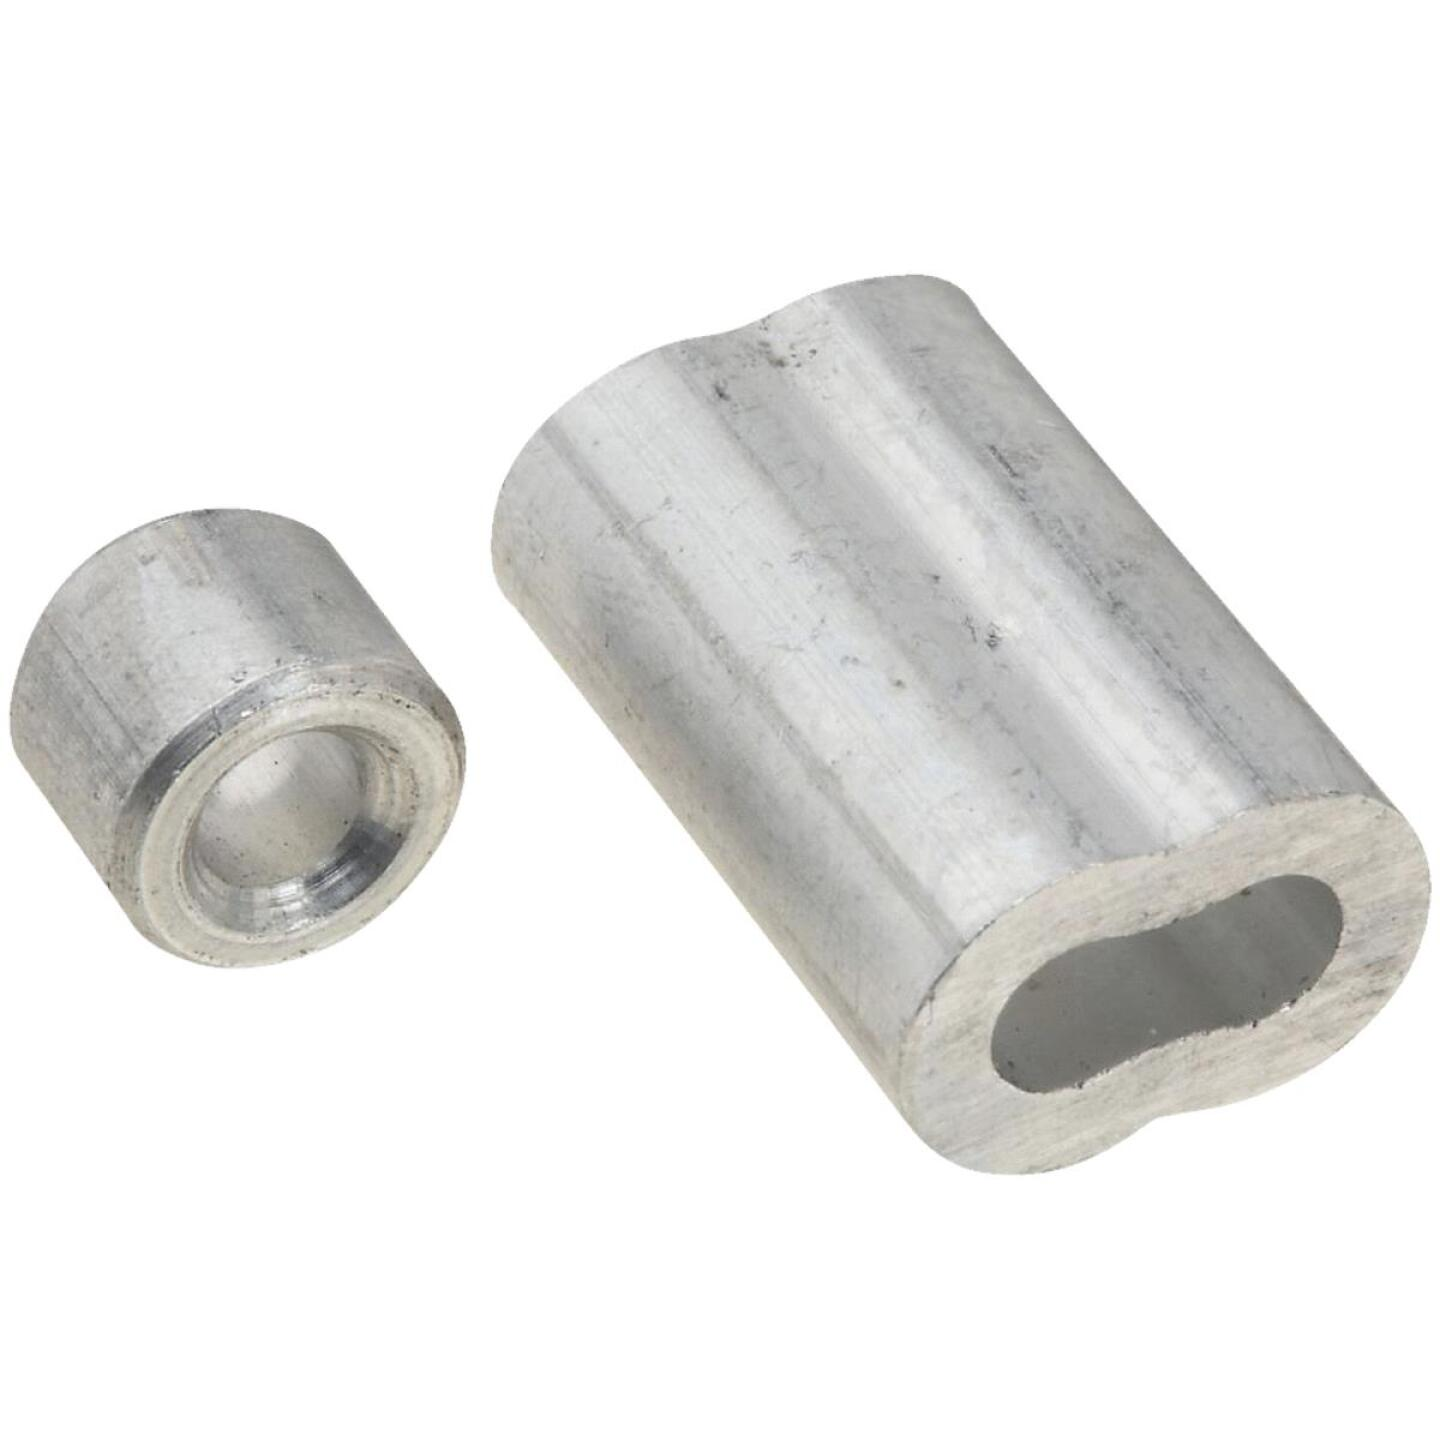 National 3/16 In. Aluminum Garage Door Ferrule & Stop Kit Image 1